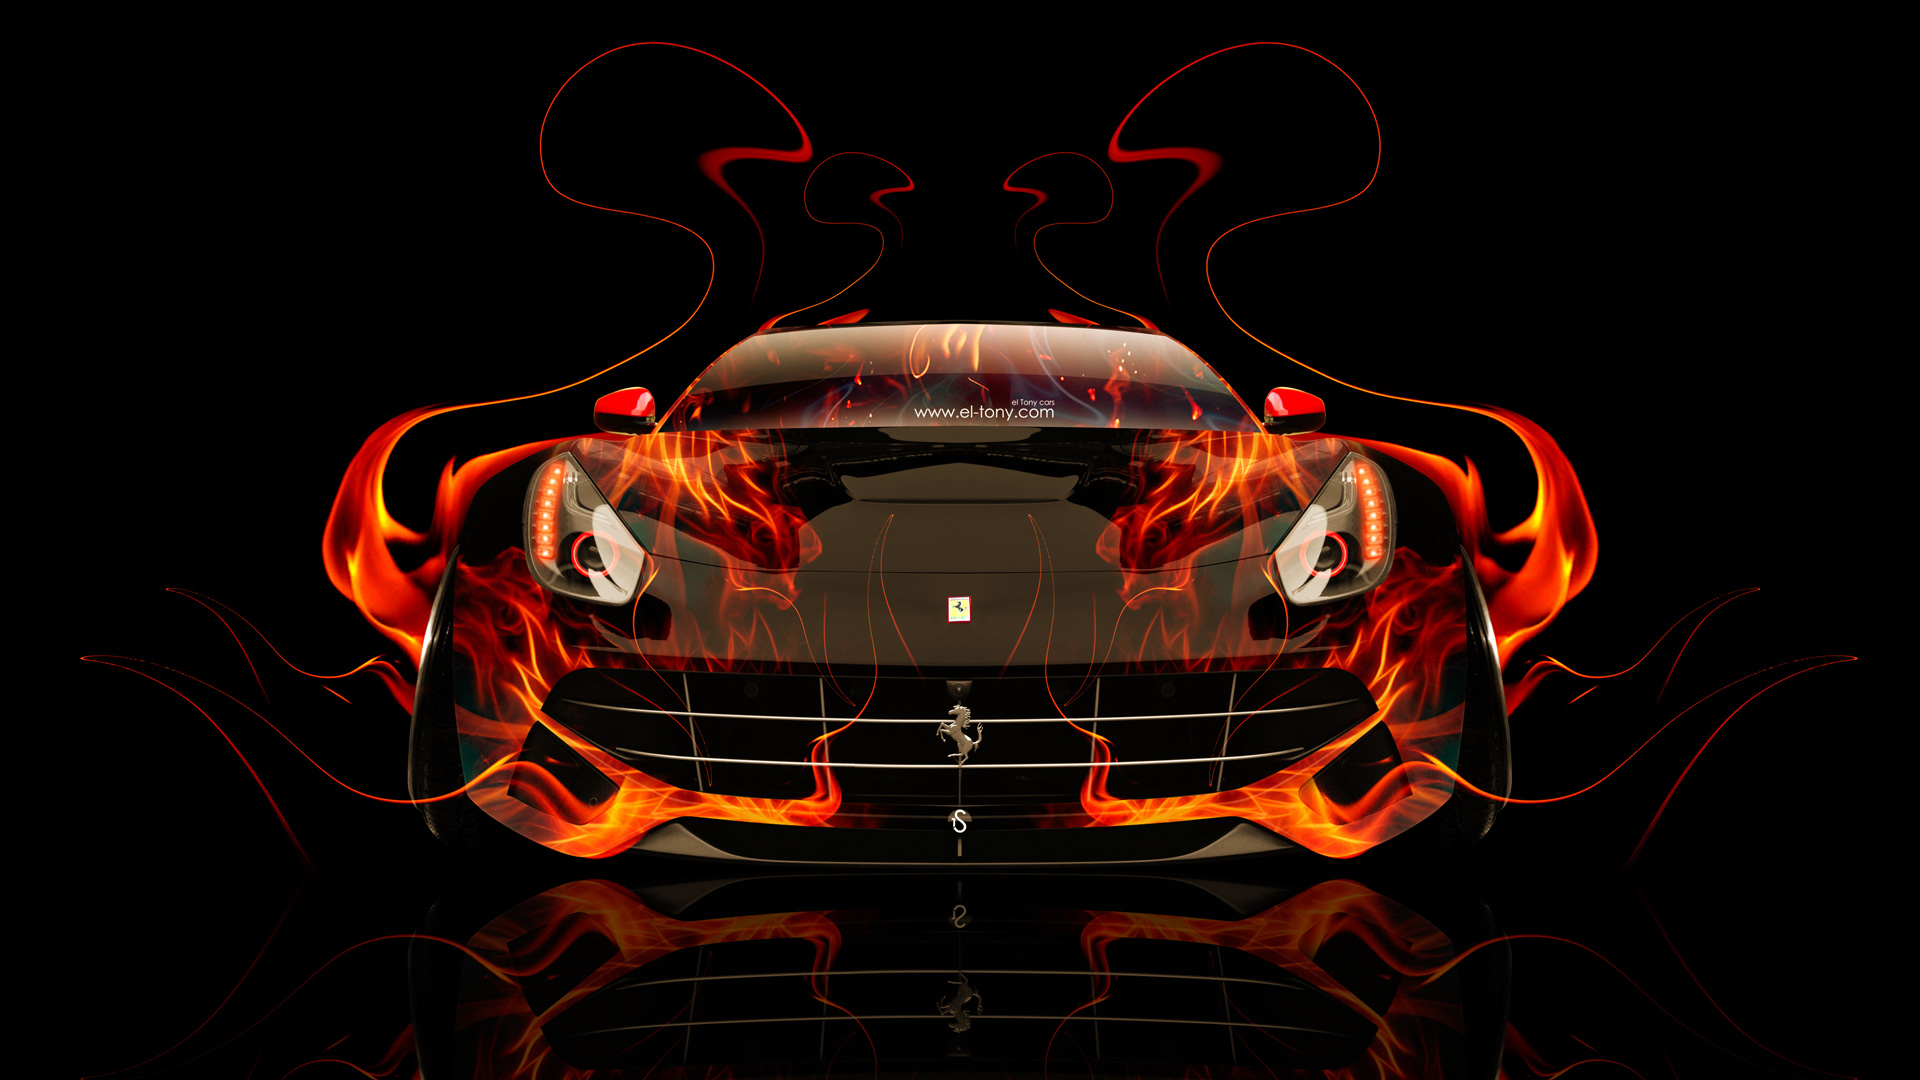 Ferrari F12 Berlinetta Front Fire Abstract Car 2014 HD Wallpapers ...